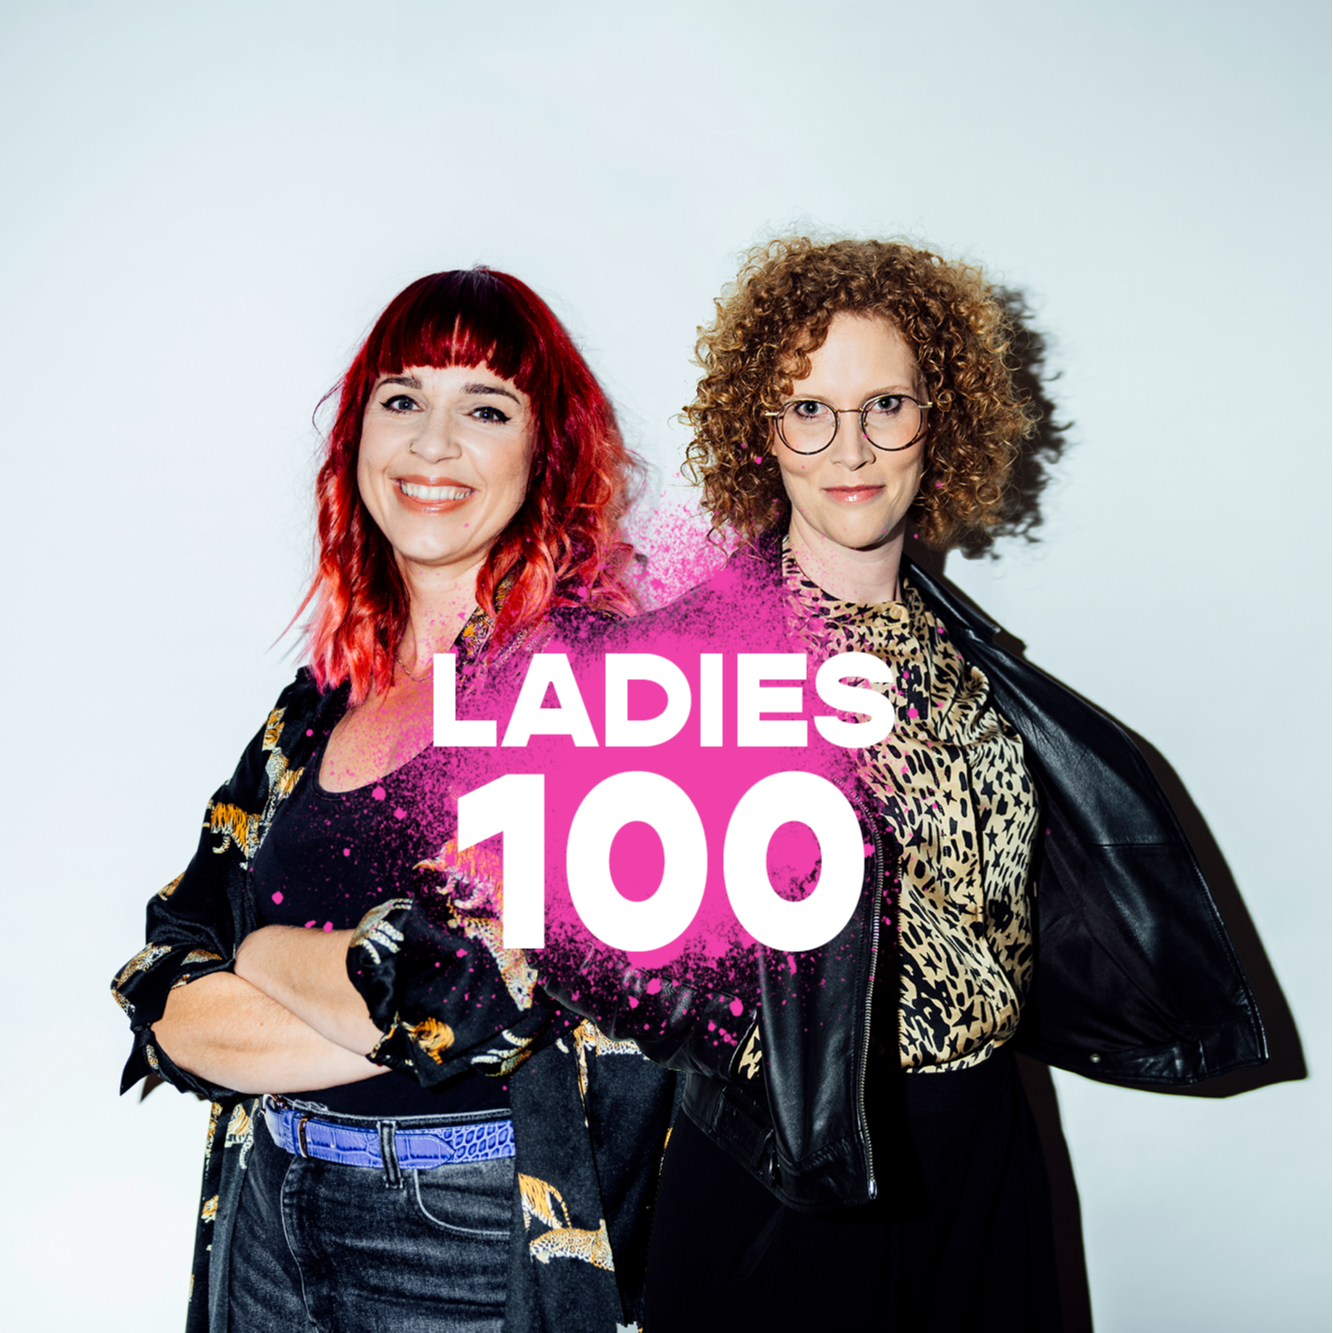 Ladies 100 fb